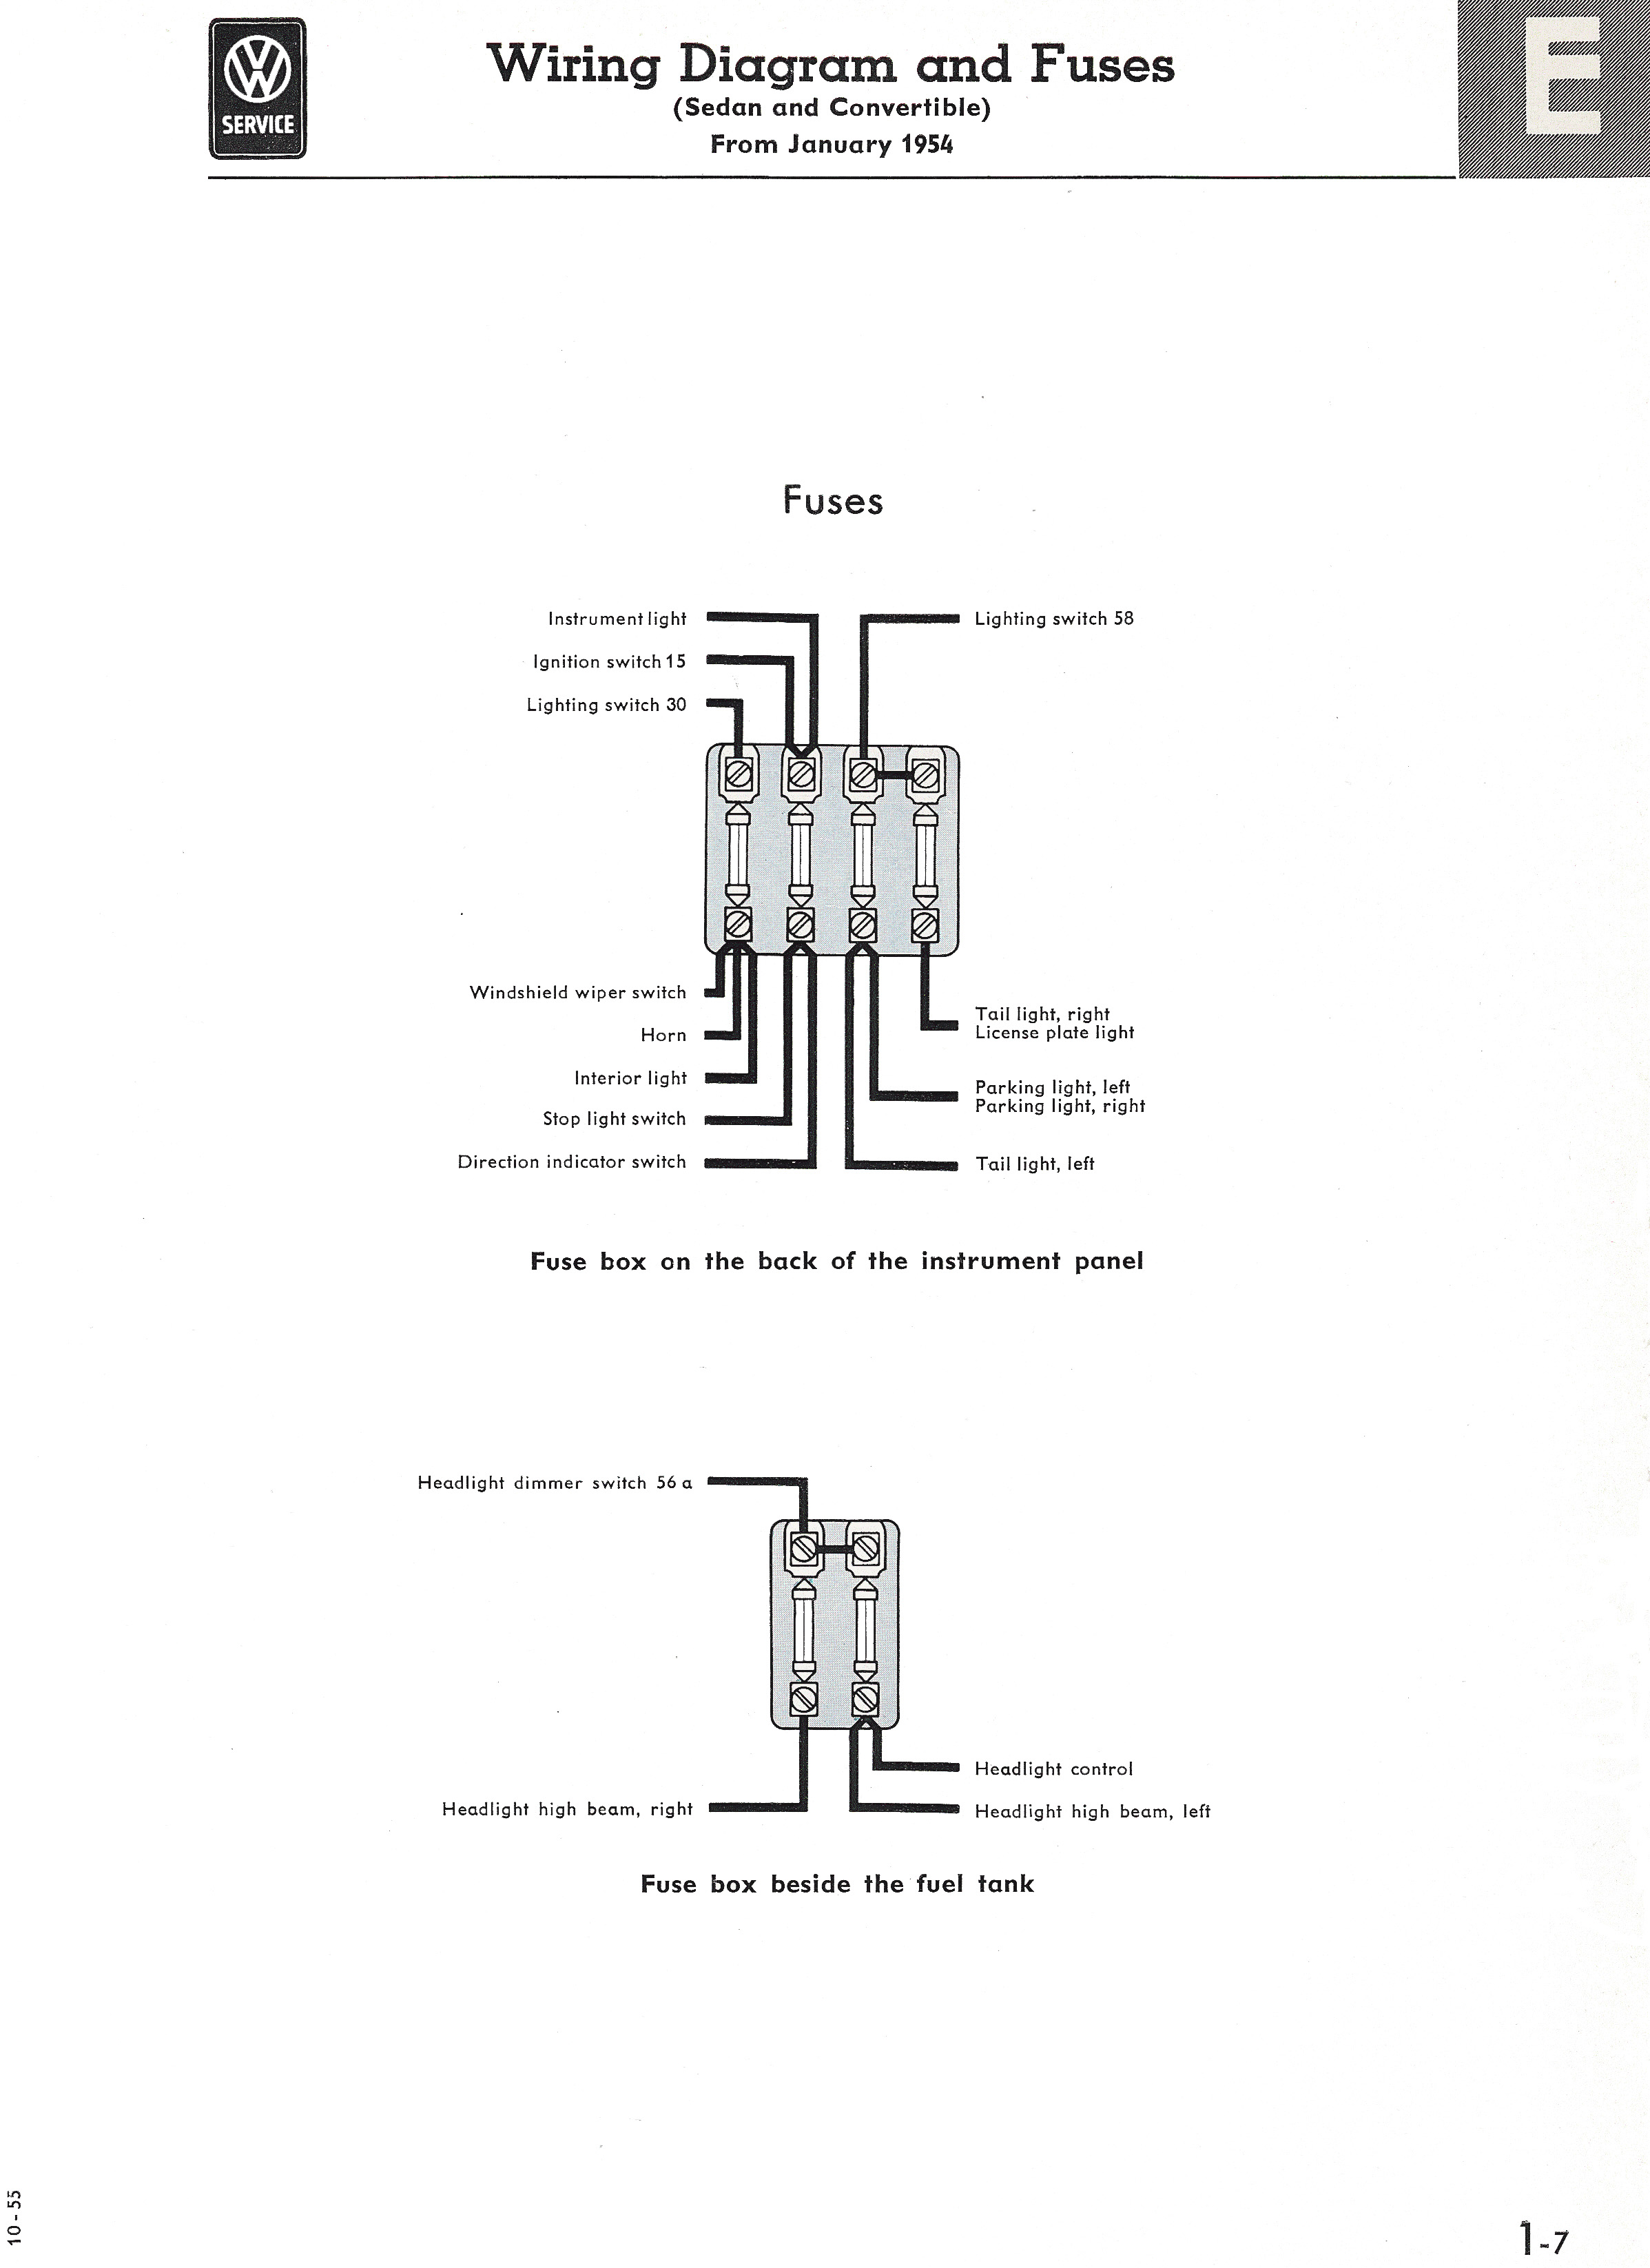 Type 1 Wiring Diagrams 79 Chevy Truck Fuse Block P